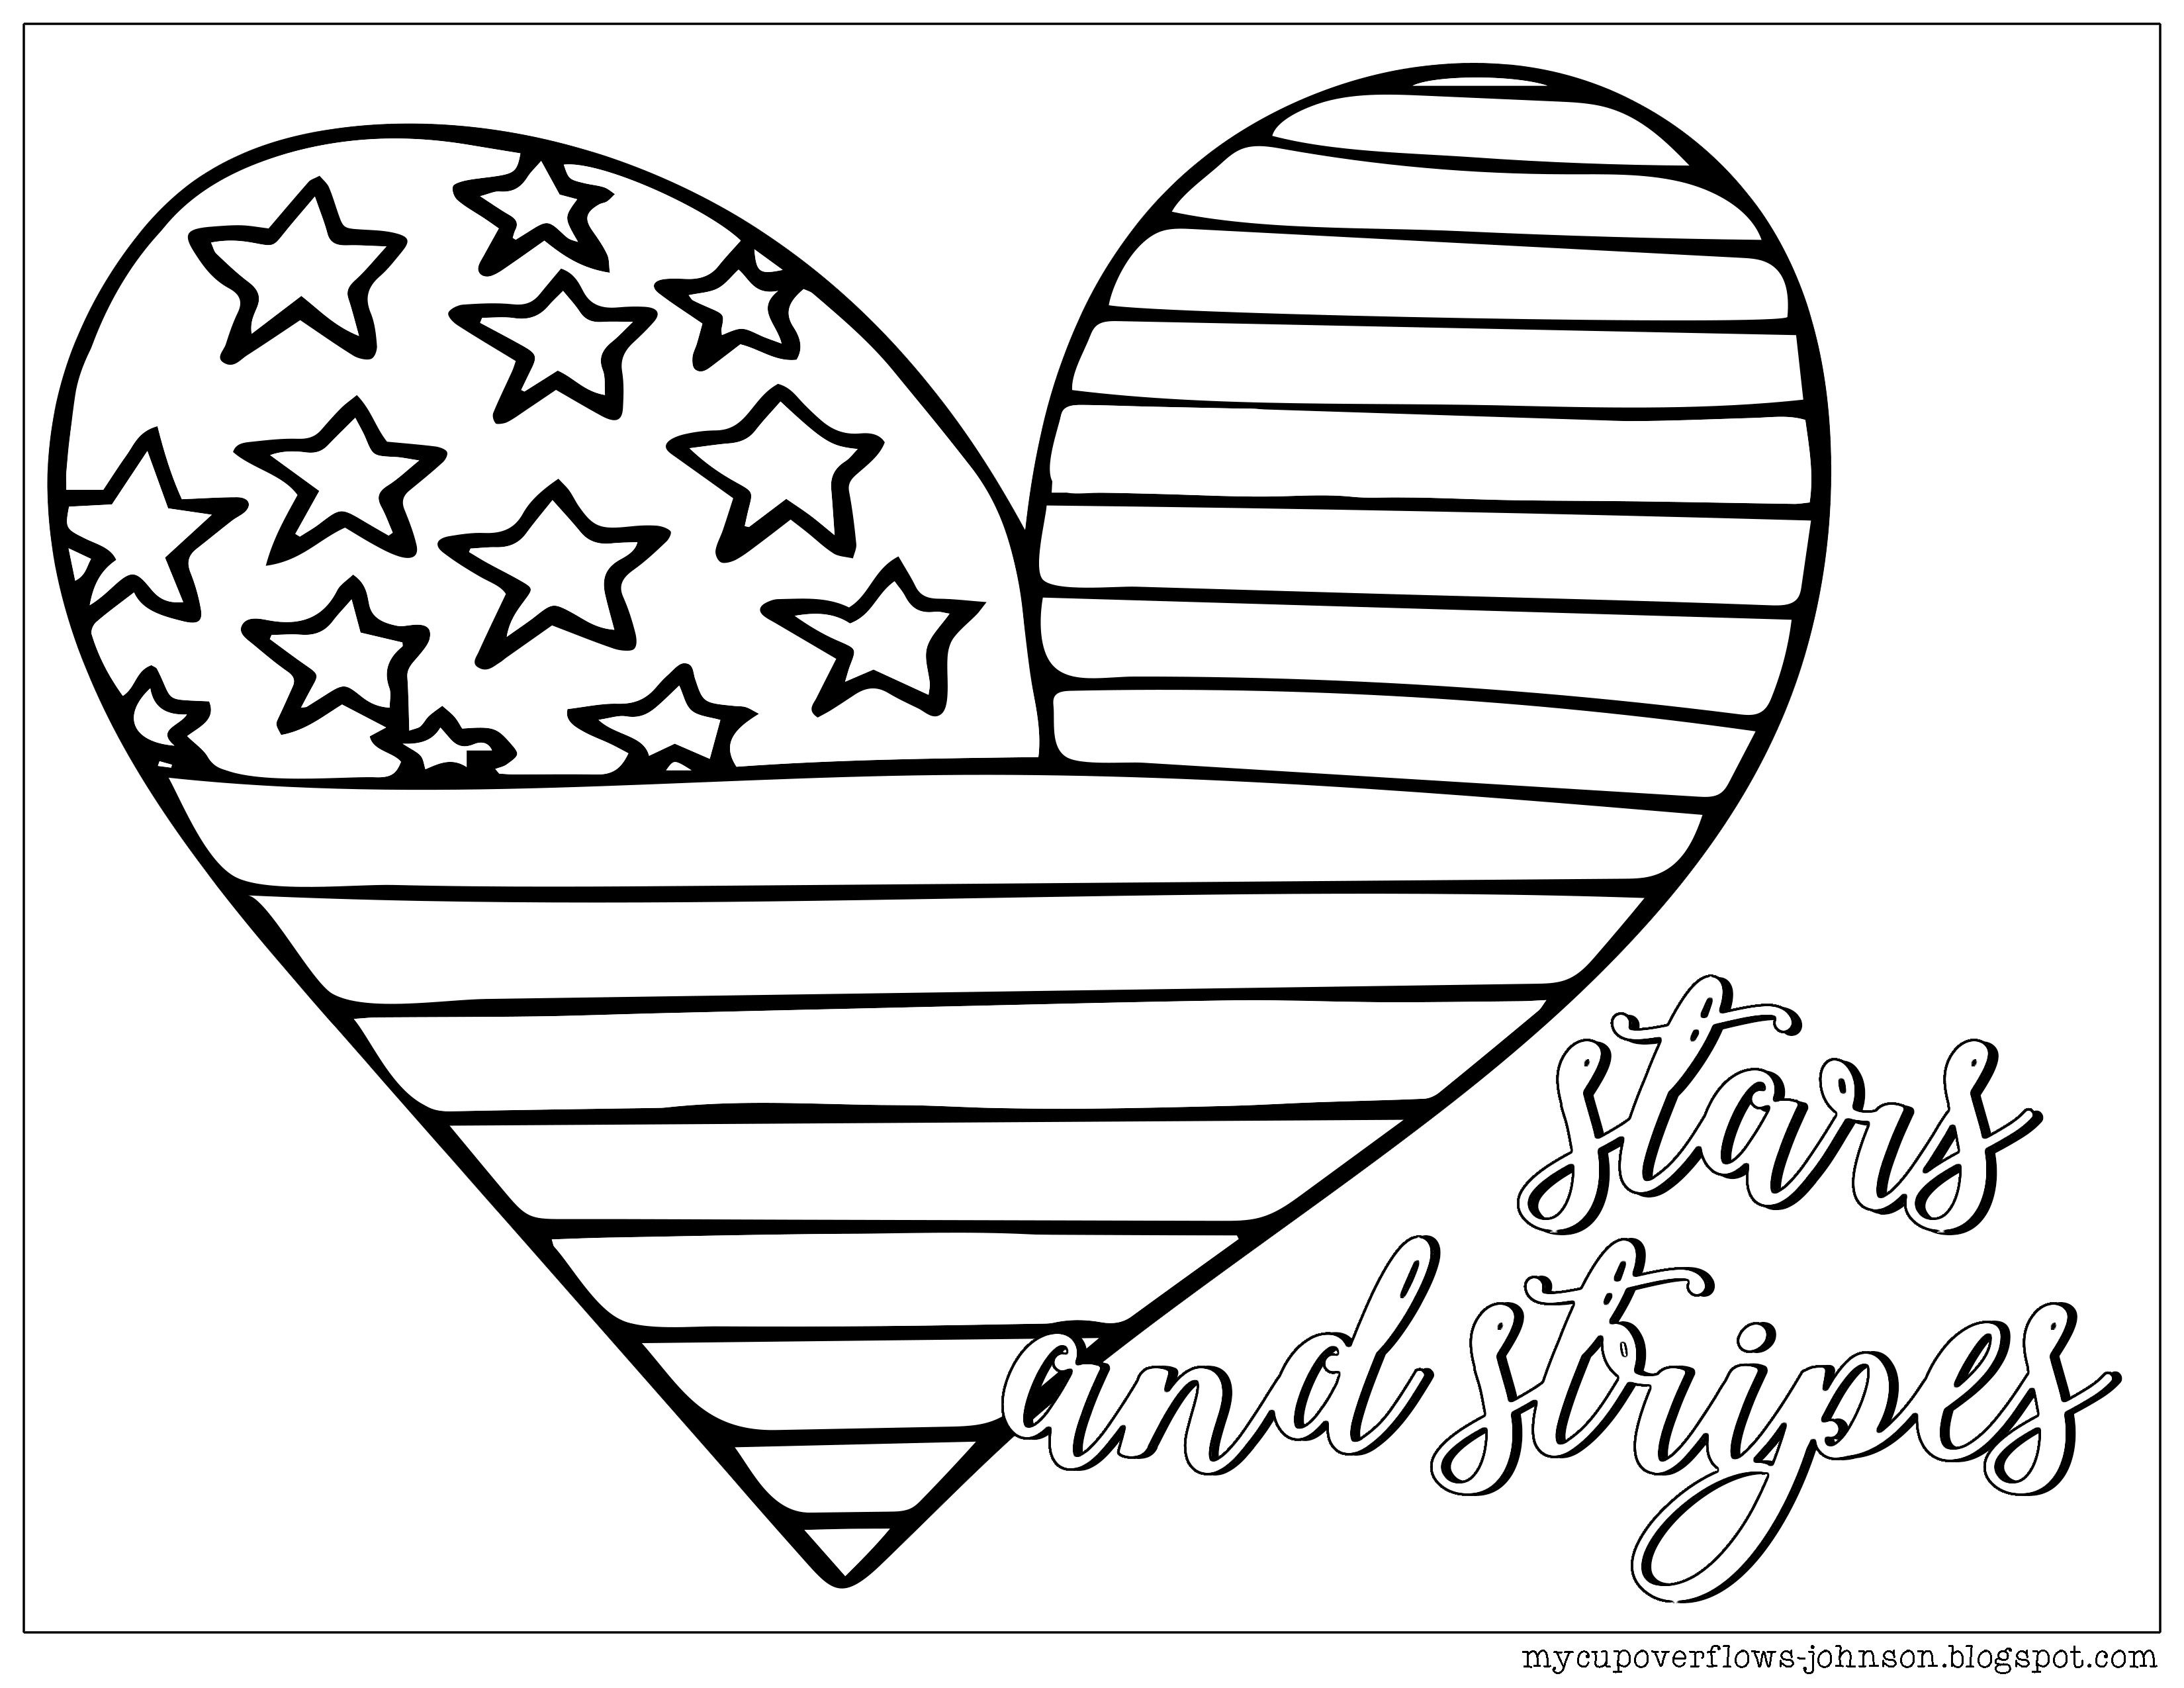 stars and stripes coloring pages coloring pages for the 4th of july coloring pages 4th and coloring stars pages stripes